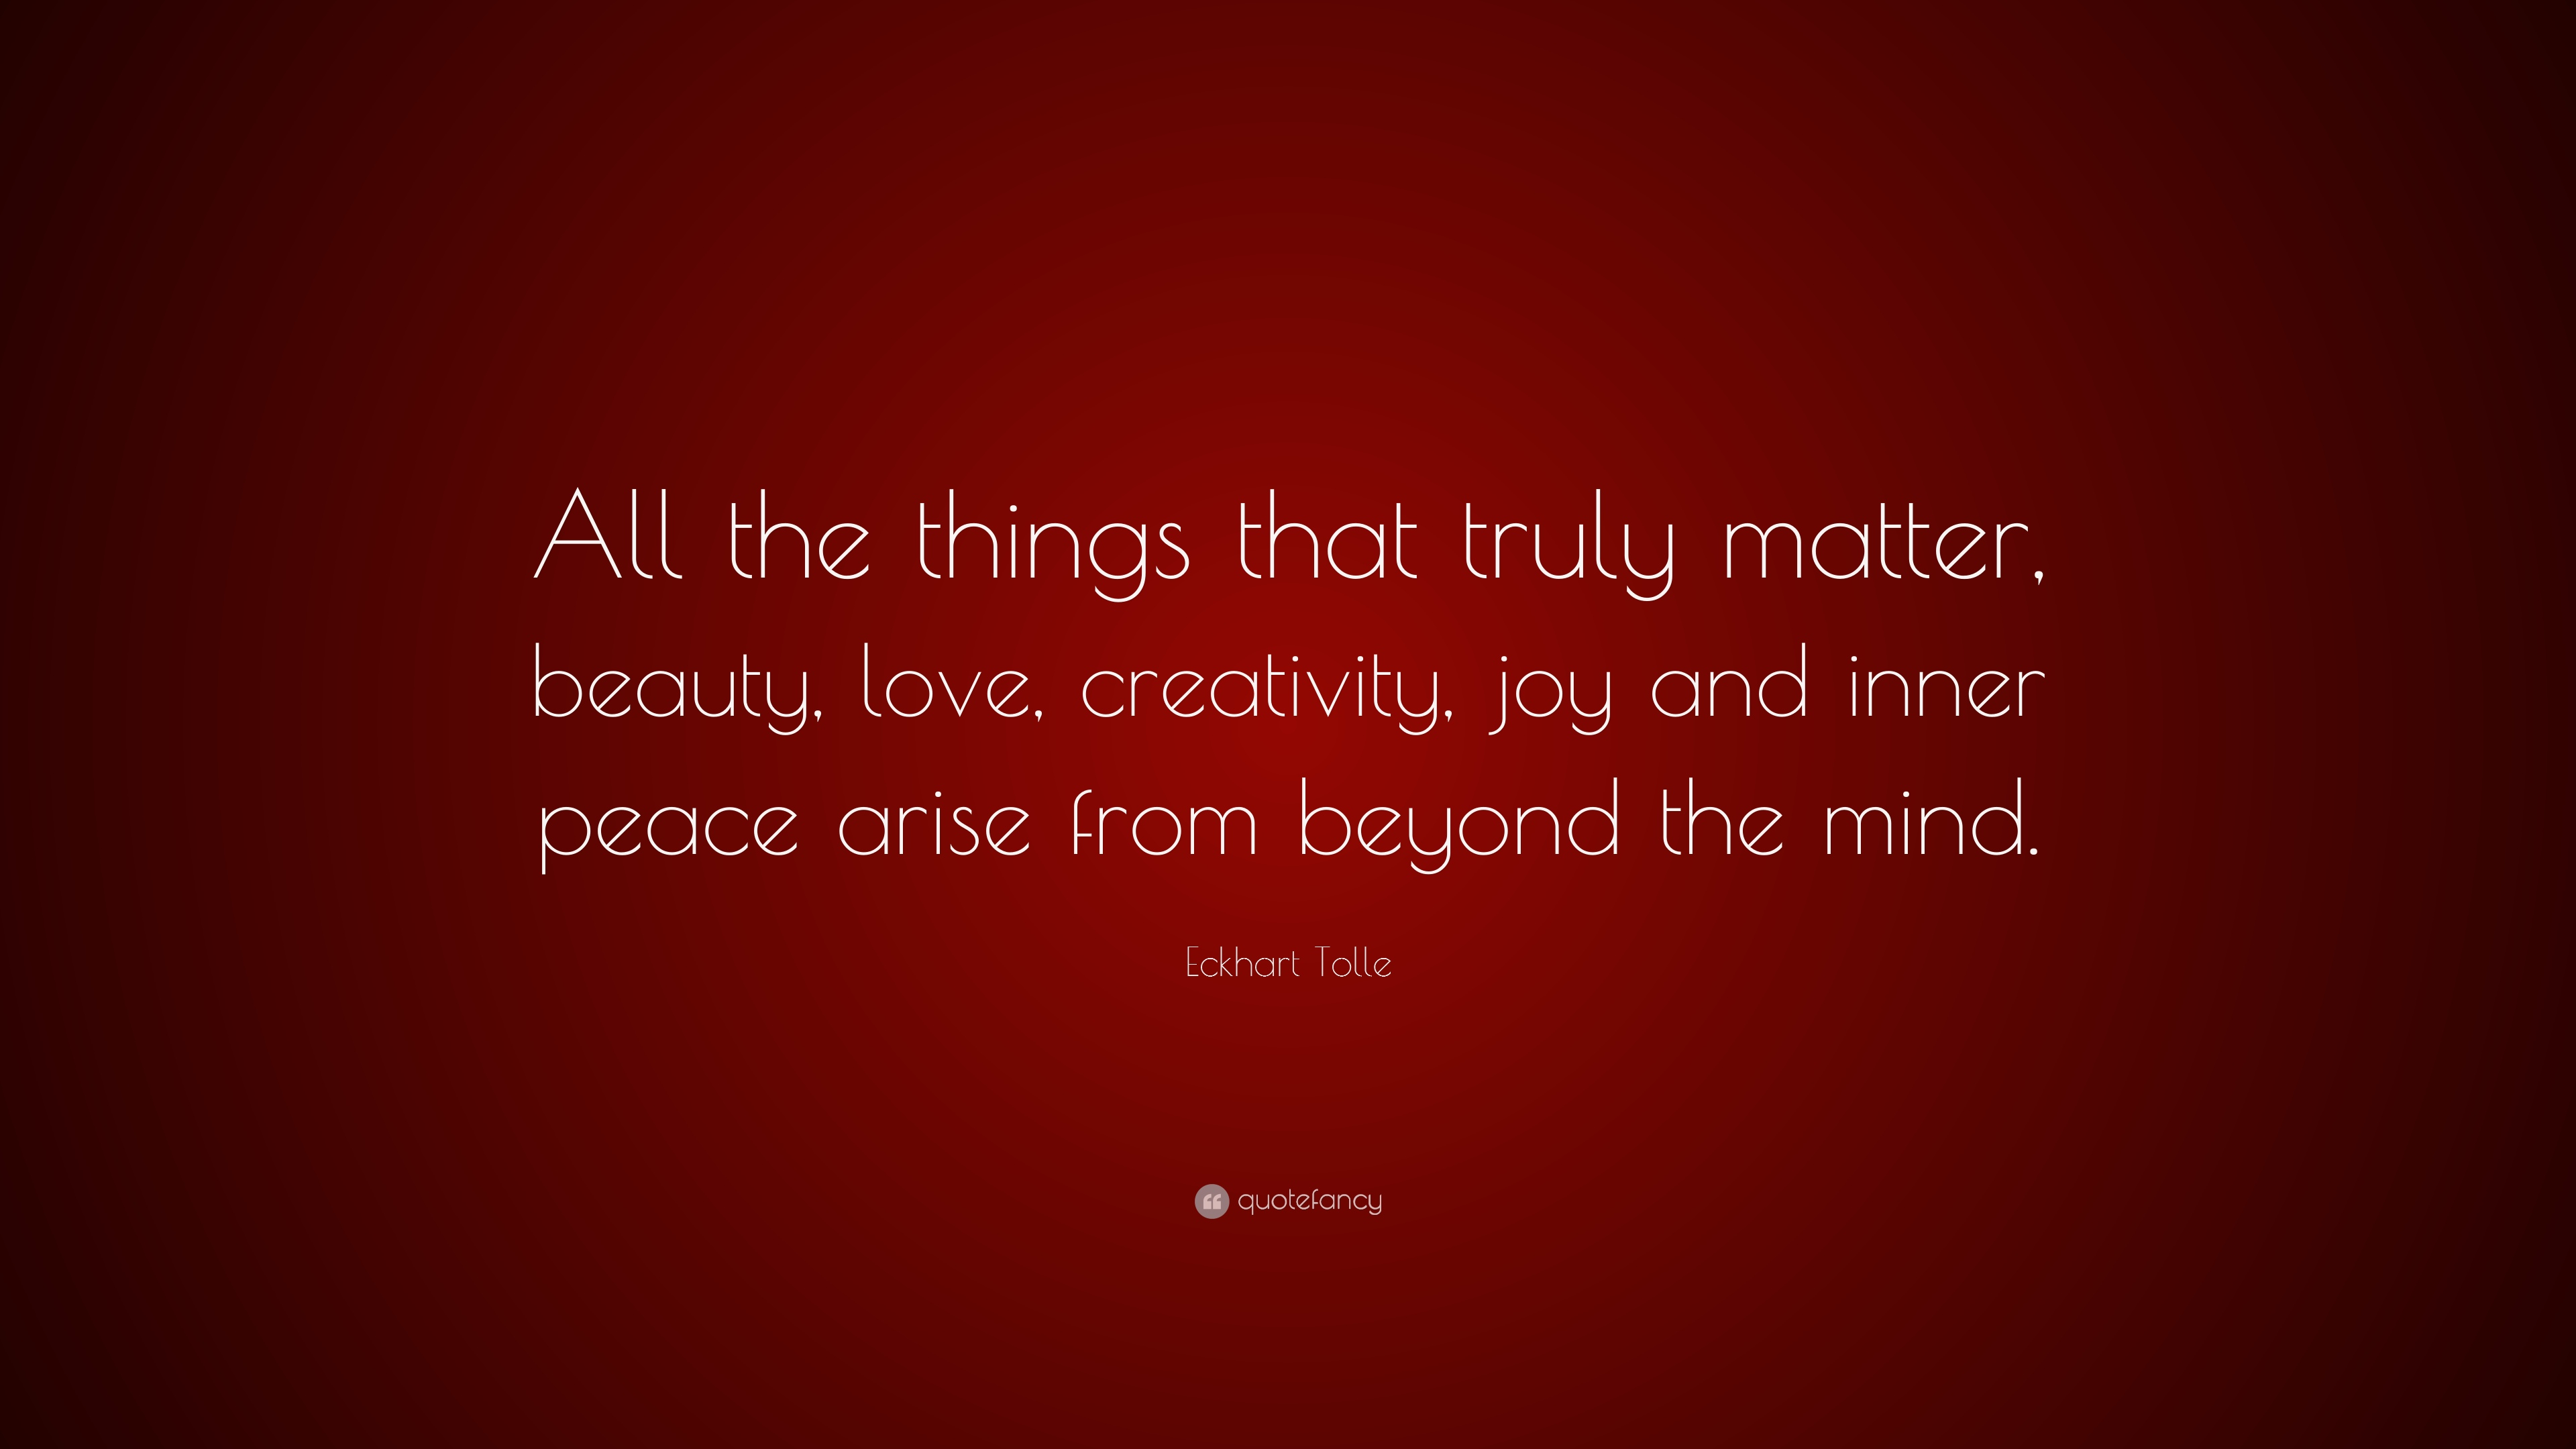 Love Wallpapers With Matter : Eckhart Tolle Quote: ?All the things that truly matter, beauty, love, creativity, joy and inner ...